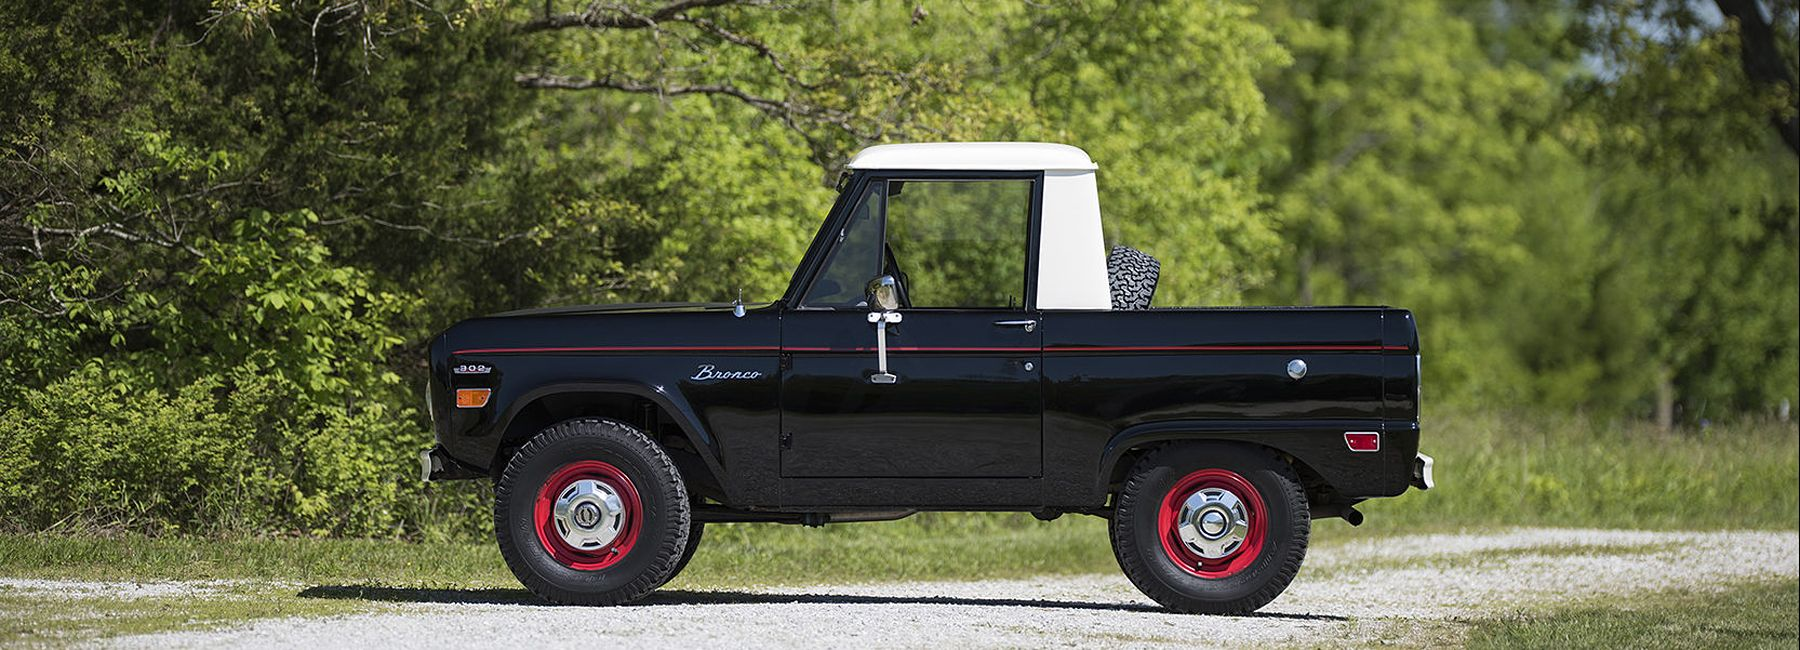 The Ford Bronco U14 Half Cab Pick Up Truck Ford Bronco Bronco Ford